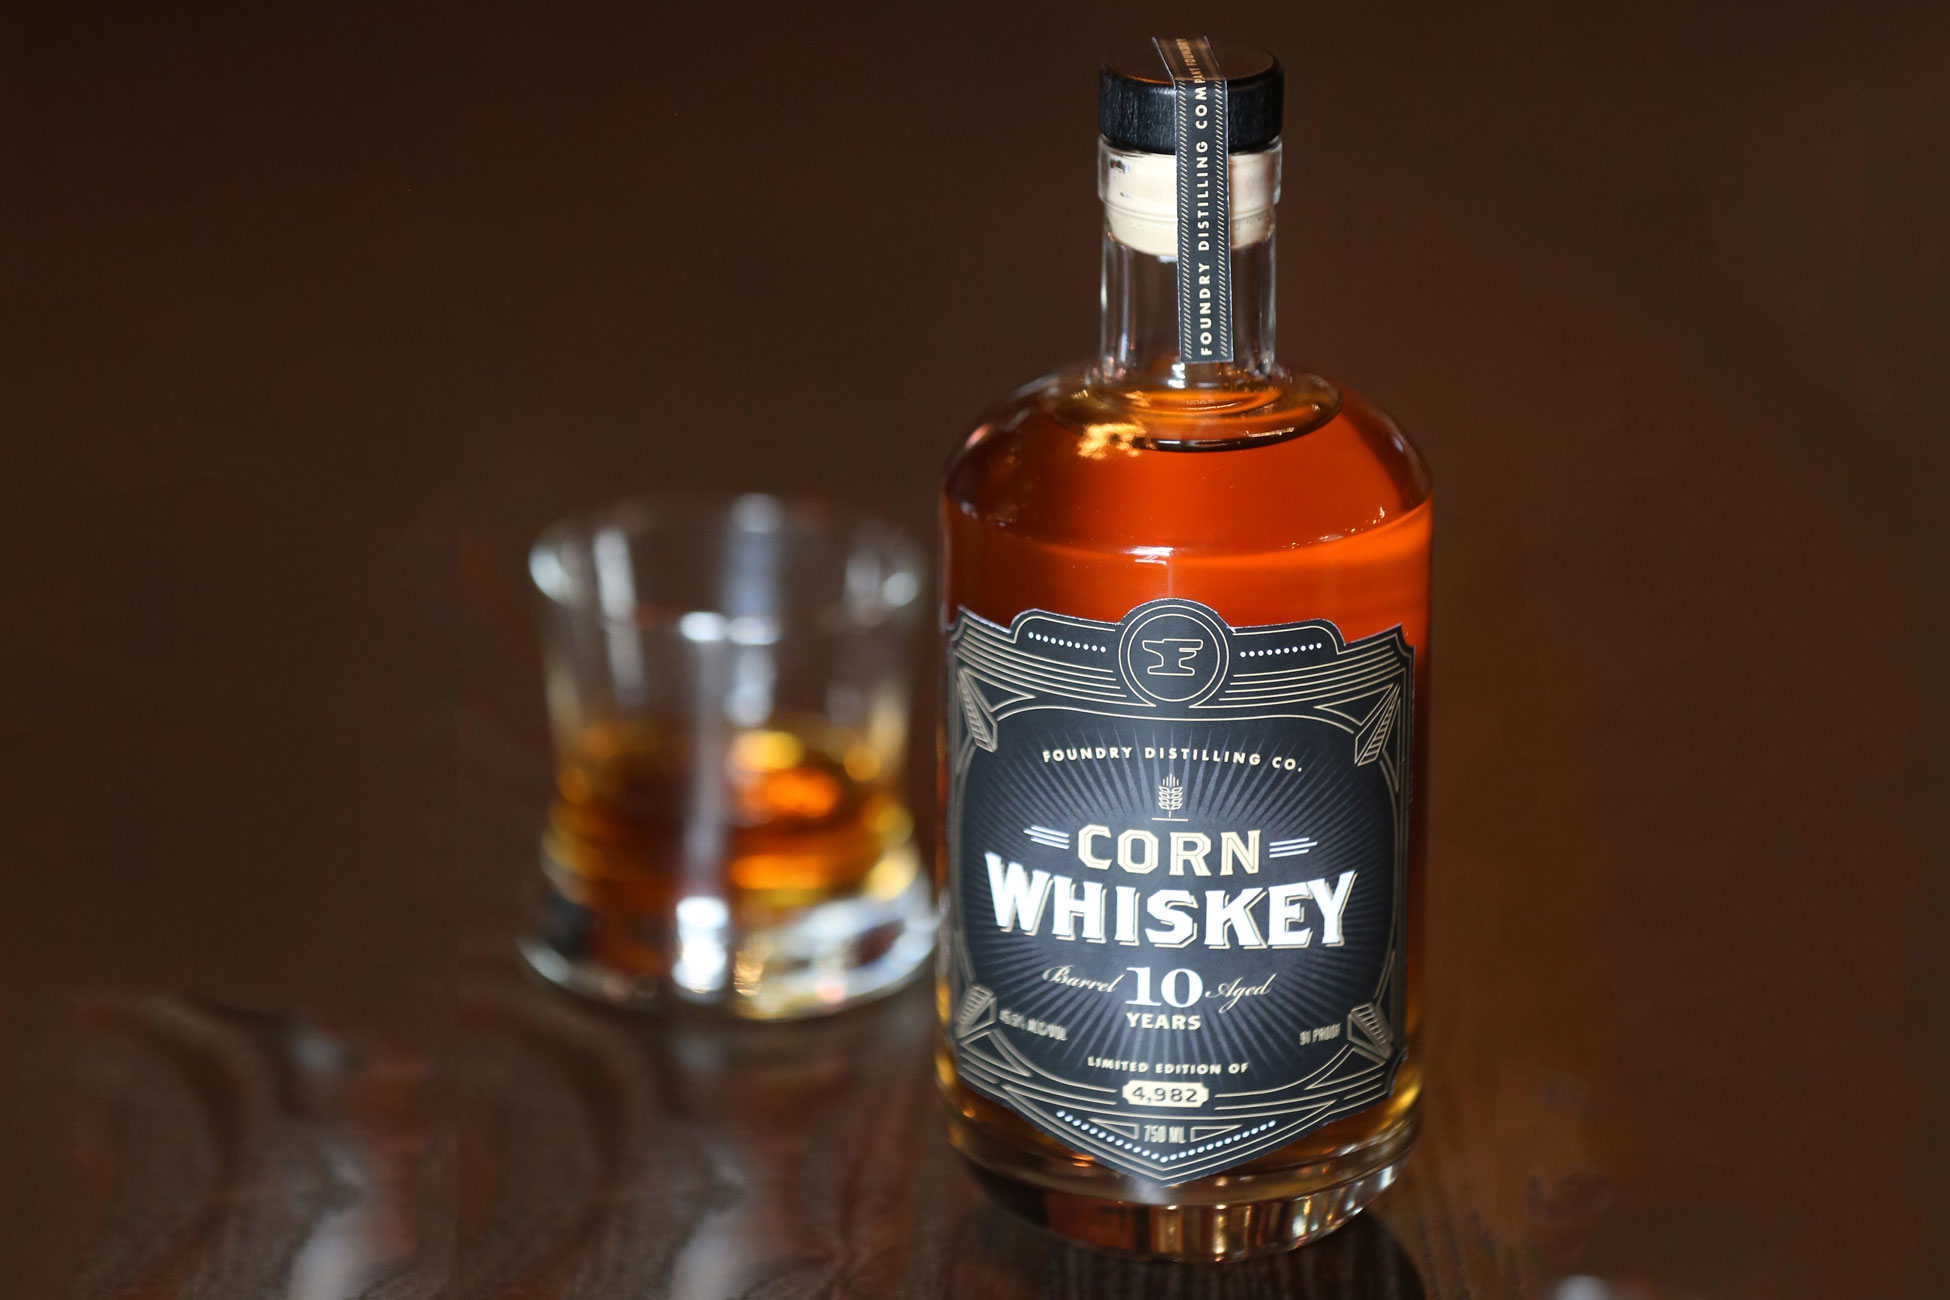 Foundry Distillery 10 year whiskey